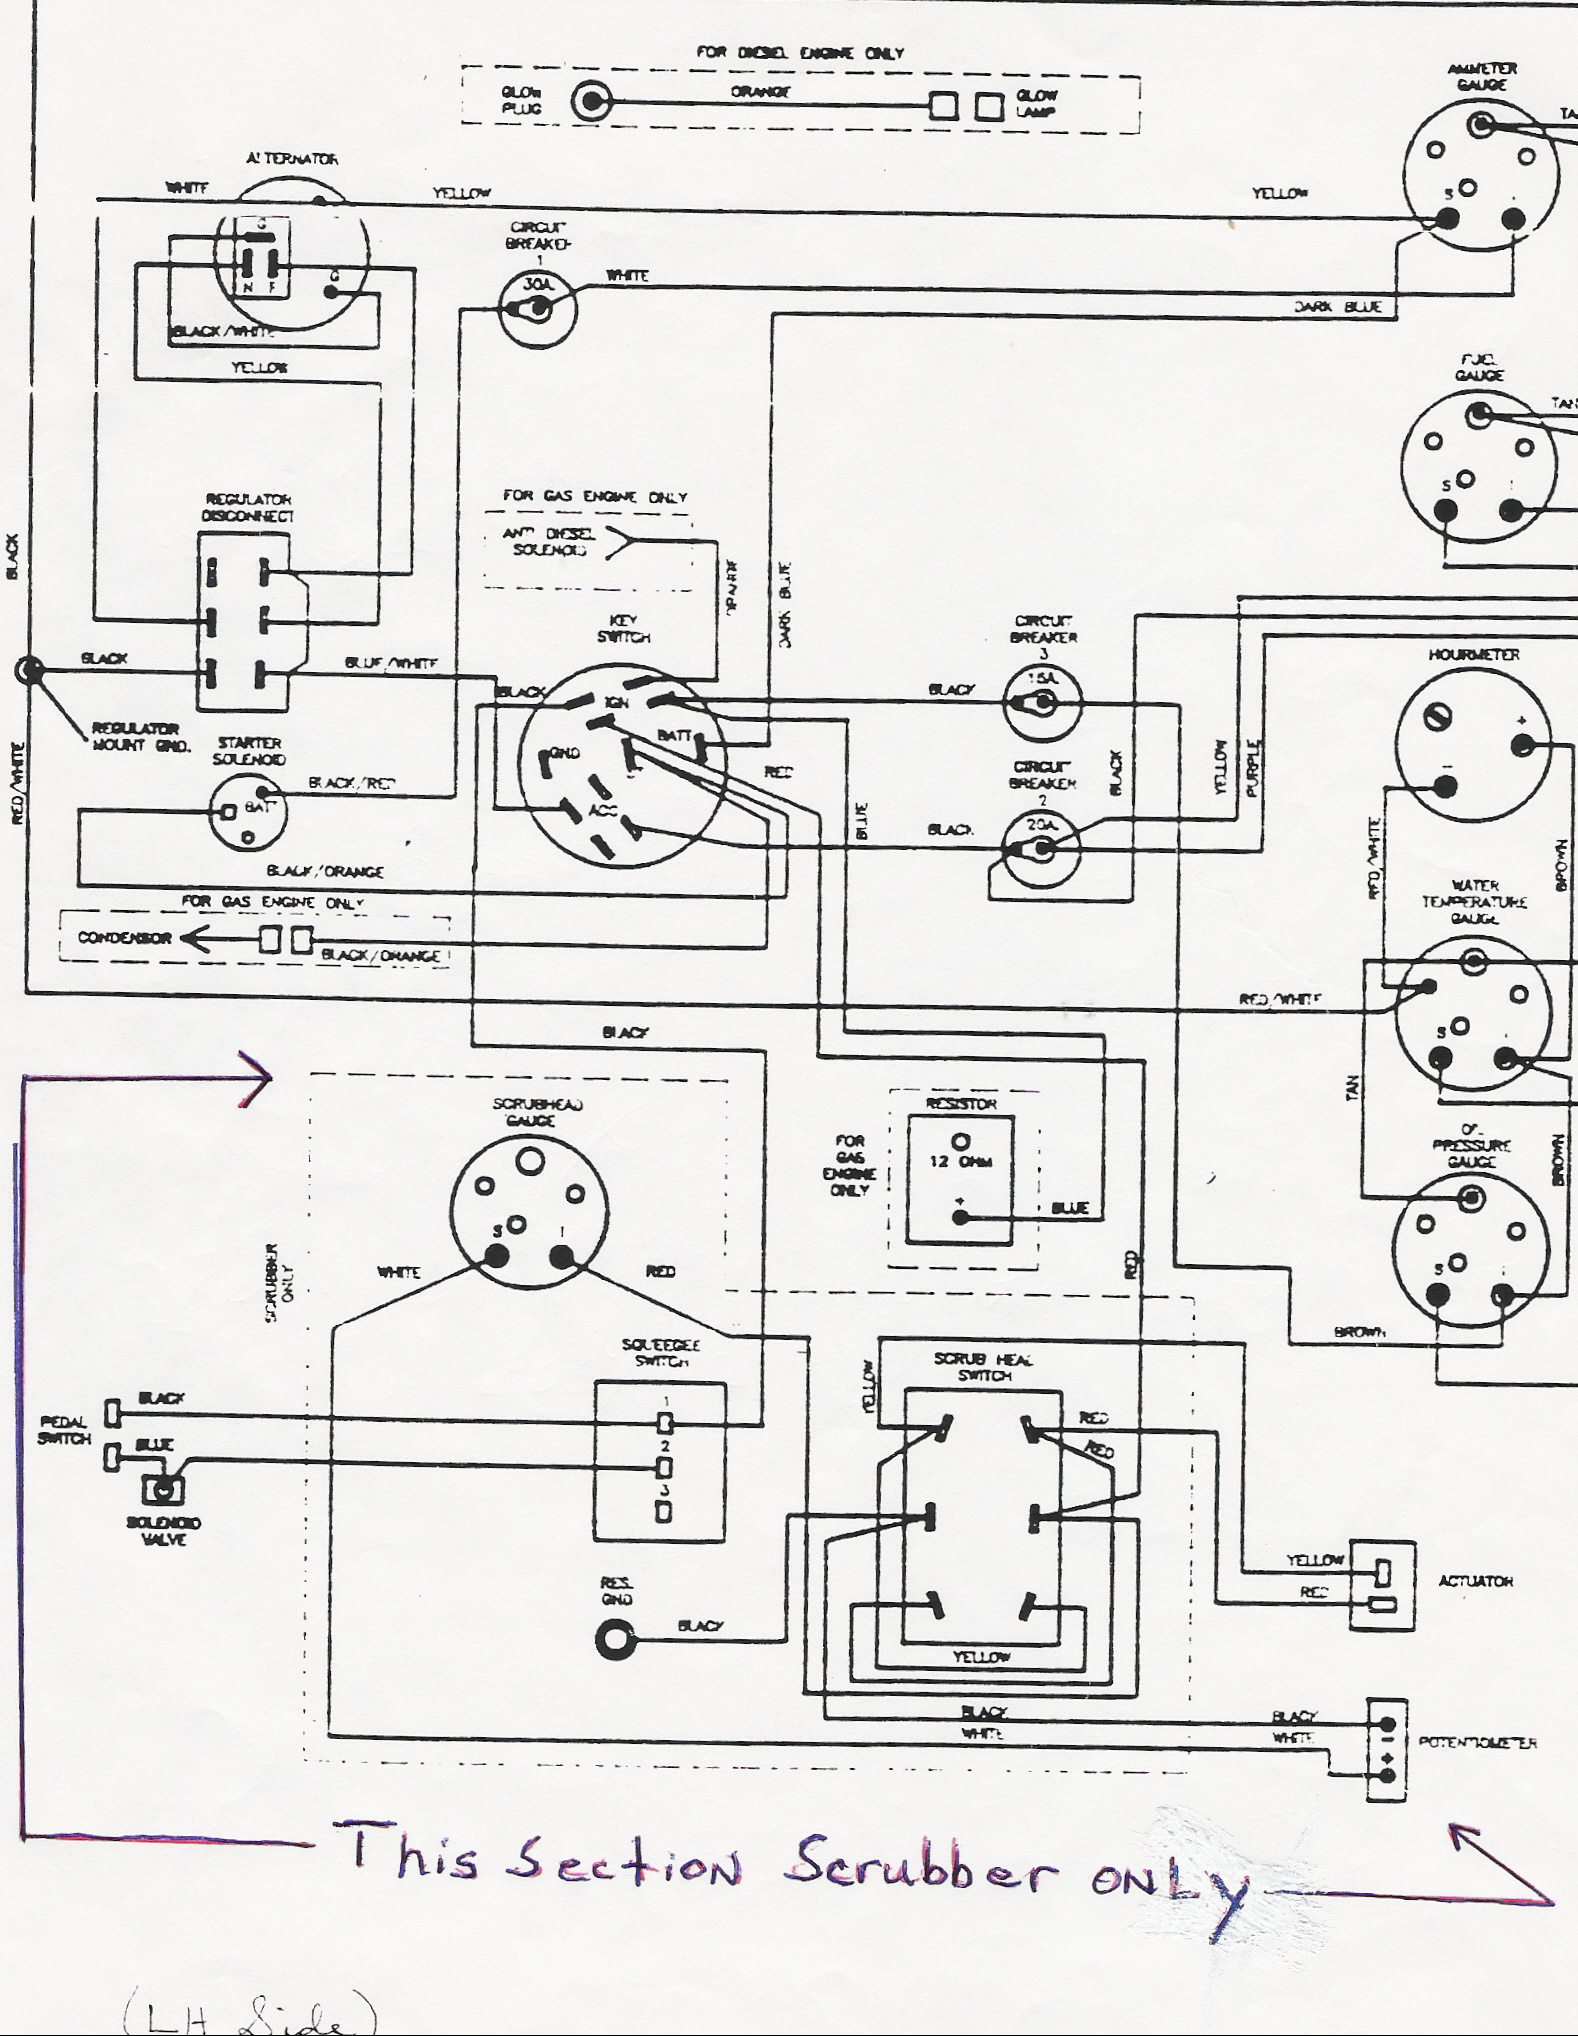 [DIAGRAM] 4k Onan Generator Wiring Diagram For A FULL